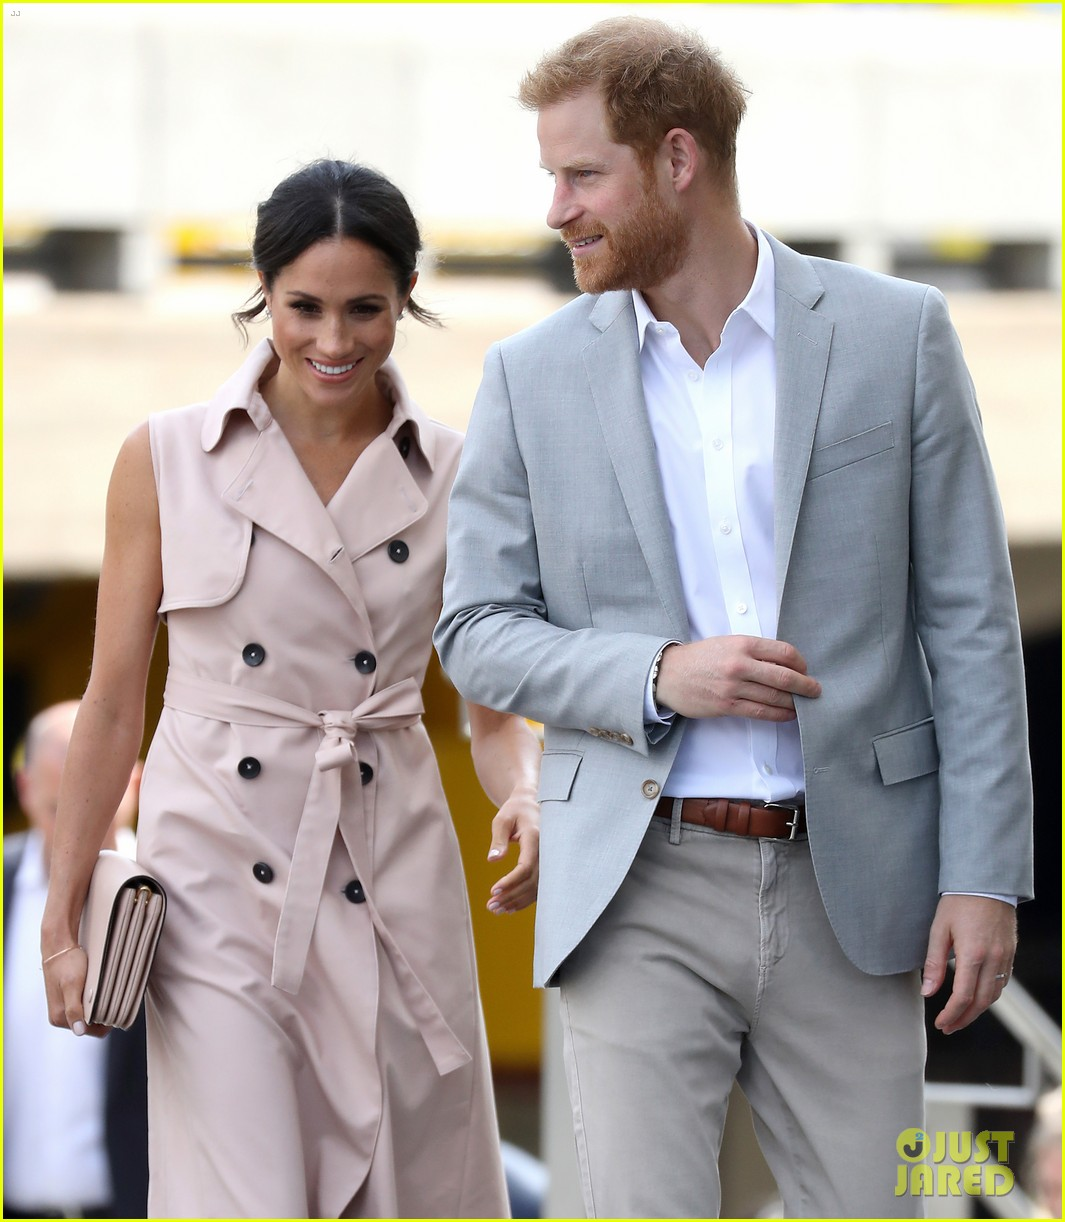 Duchess Meghan Markle Is Summer Chic For Royal Visit With